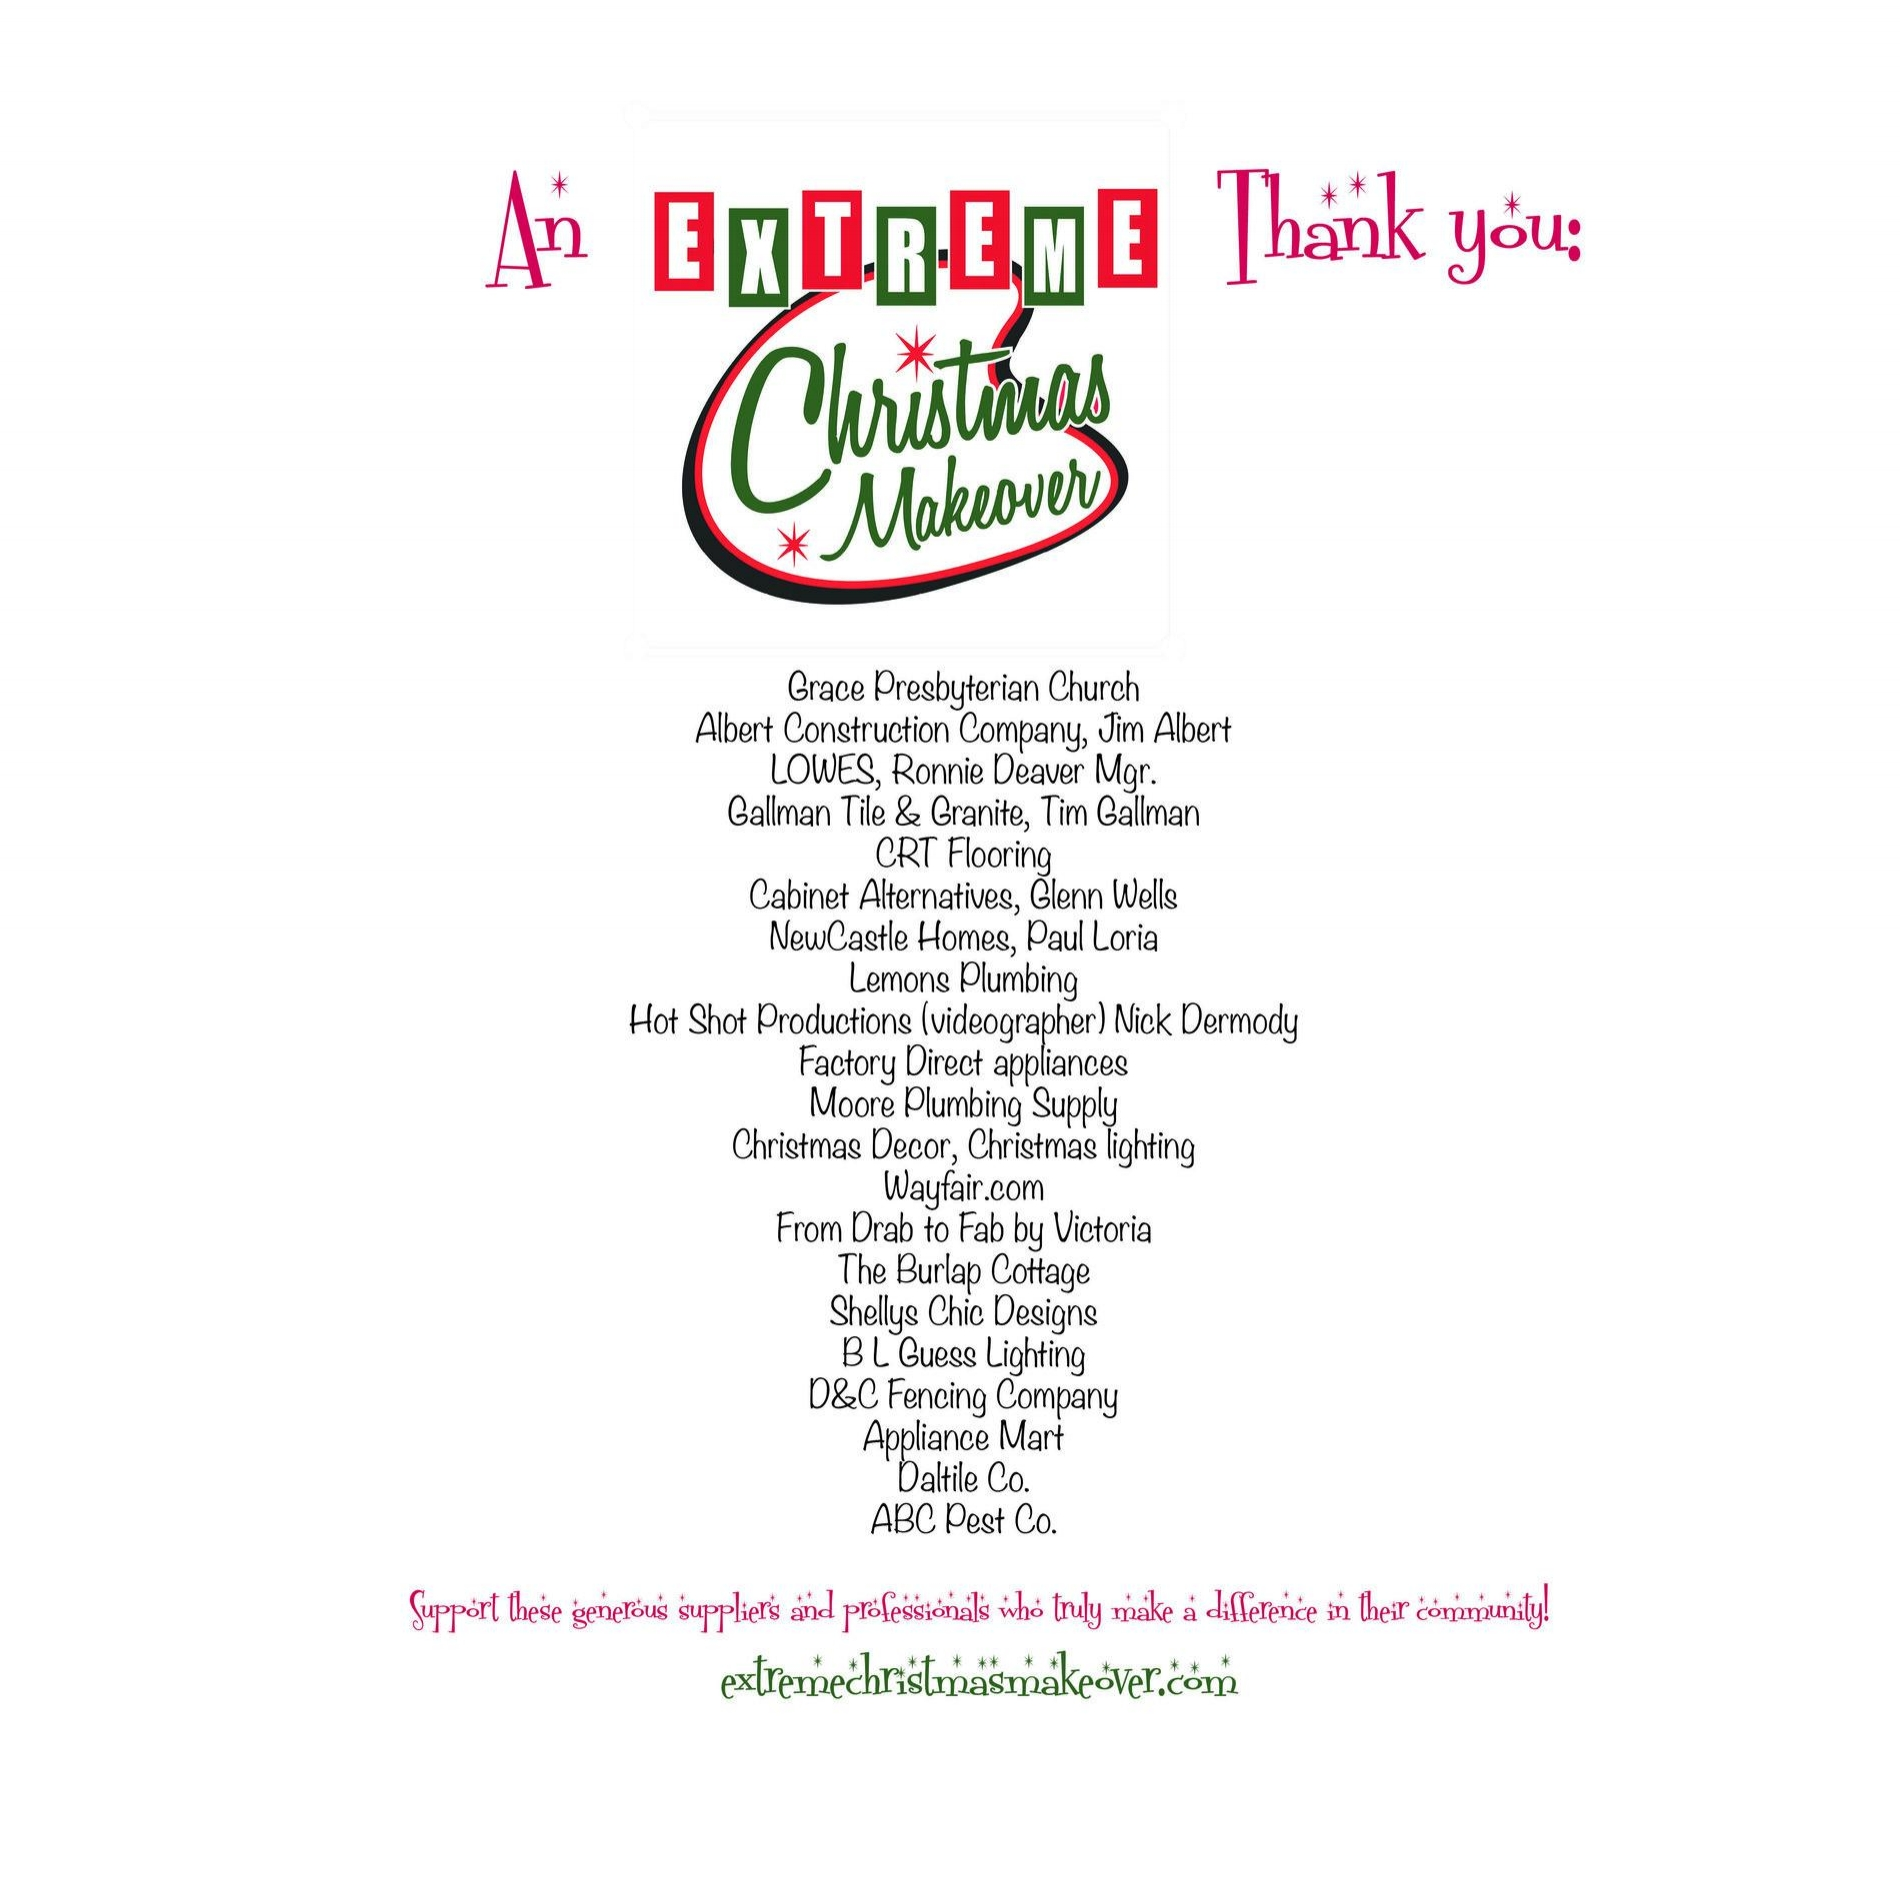 YOU CAN ACCESS ALL OF OUR WONDERFUL SPONSORS ON THE FOLLOWING LINKS. WE APPRECIATE YOU SUPPORTING BUSINESSES THAT TRULY SUPPORT THOSE IN NEED! THESE COMPANIES GO ABOVE AND BEYOND TO MAKE OUR EXTREME CHRISTMAS MAKEOVER POSSIBLE. WHAT BETTER WAY TO DO BUSINESS THAN WITH A BUSINESS THAT REALLY CARES!   http://www.gracepccc.org/